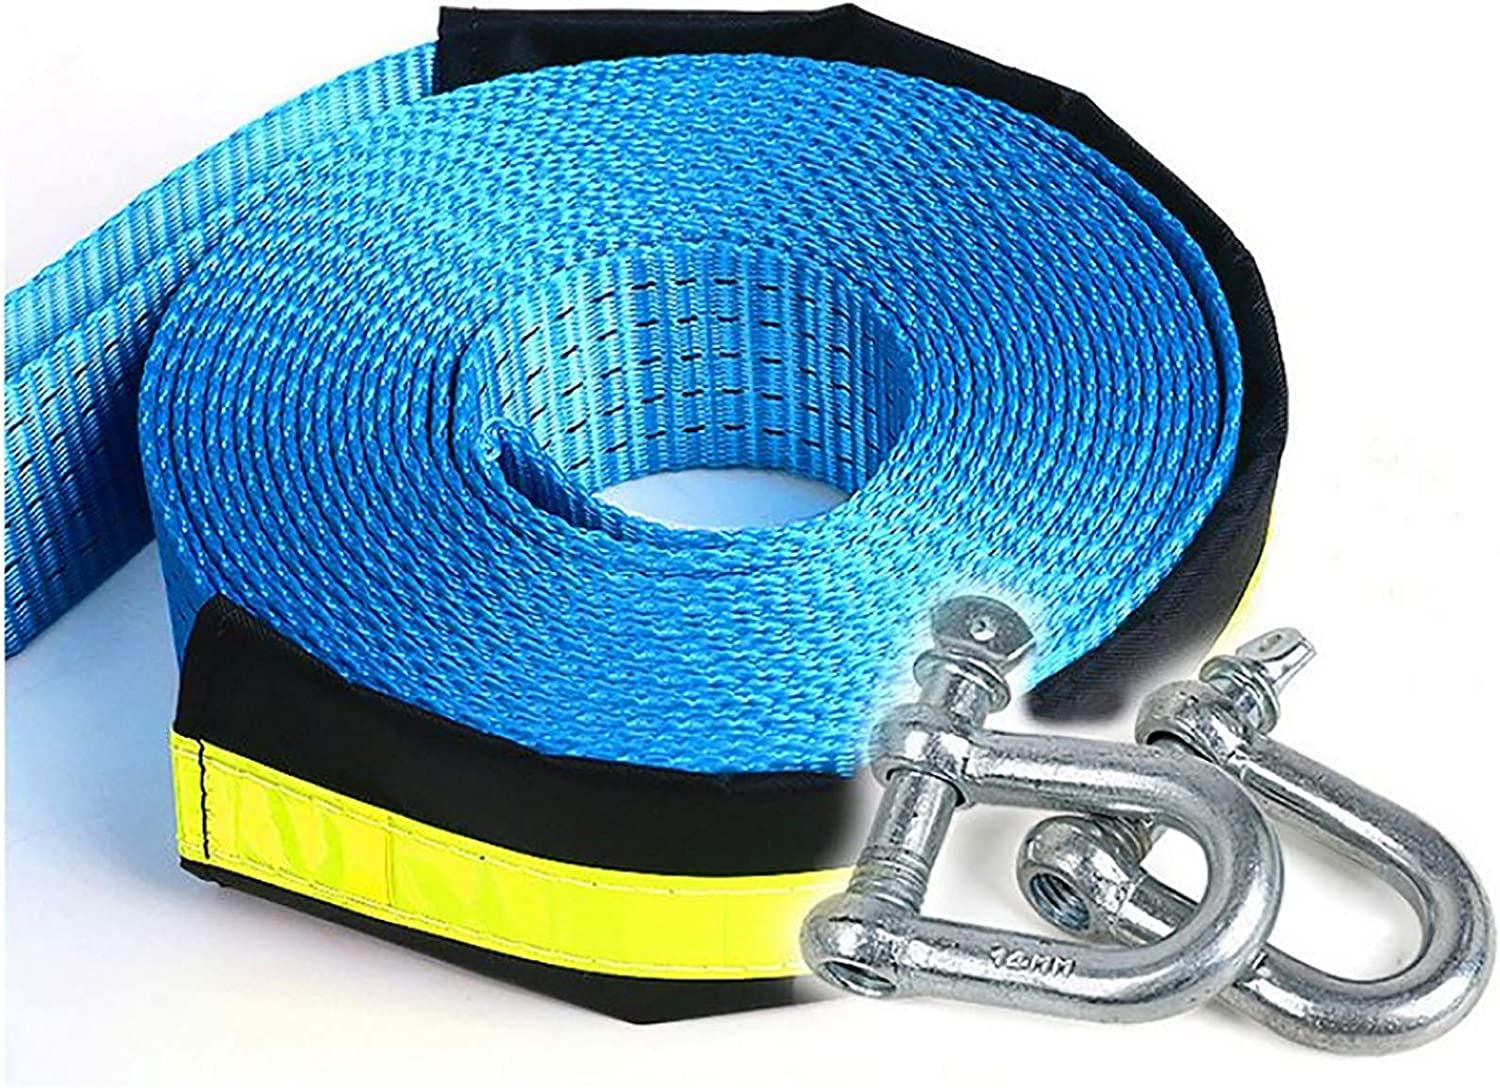 HEQCG Tow Phoenix Mall Rope Traction can Layer Double tons 5-10 Carry Great interest